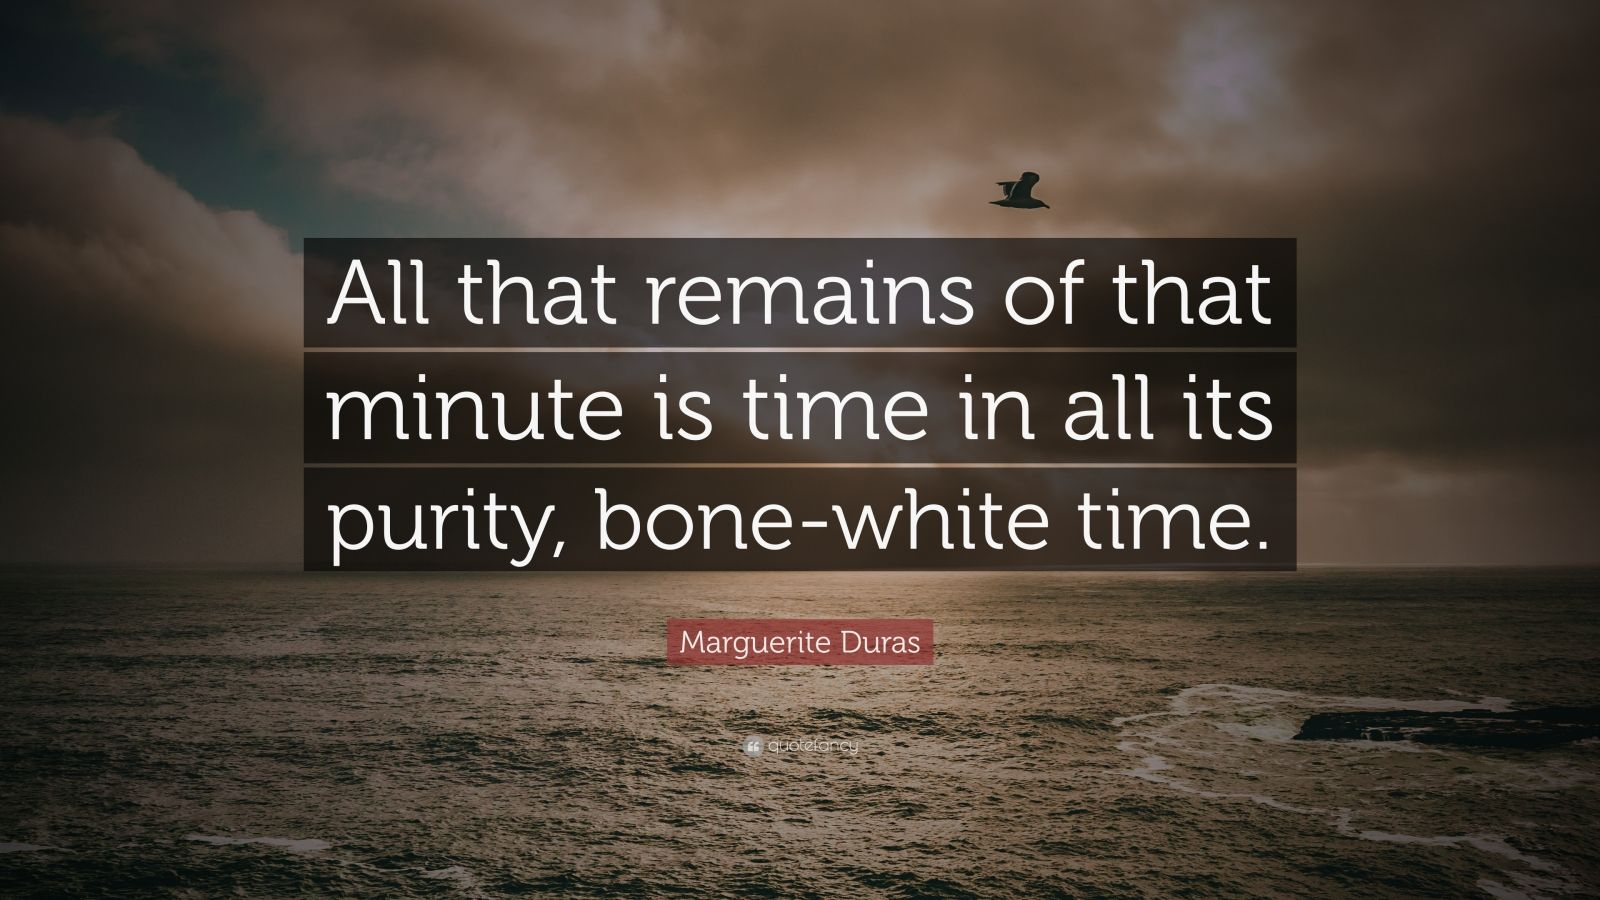 """Marguerite Duras Quote: """"All that remains of that minute is time in all its purity, bone-white time."""""""